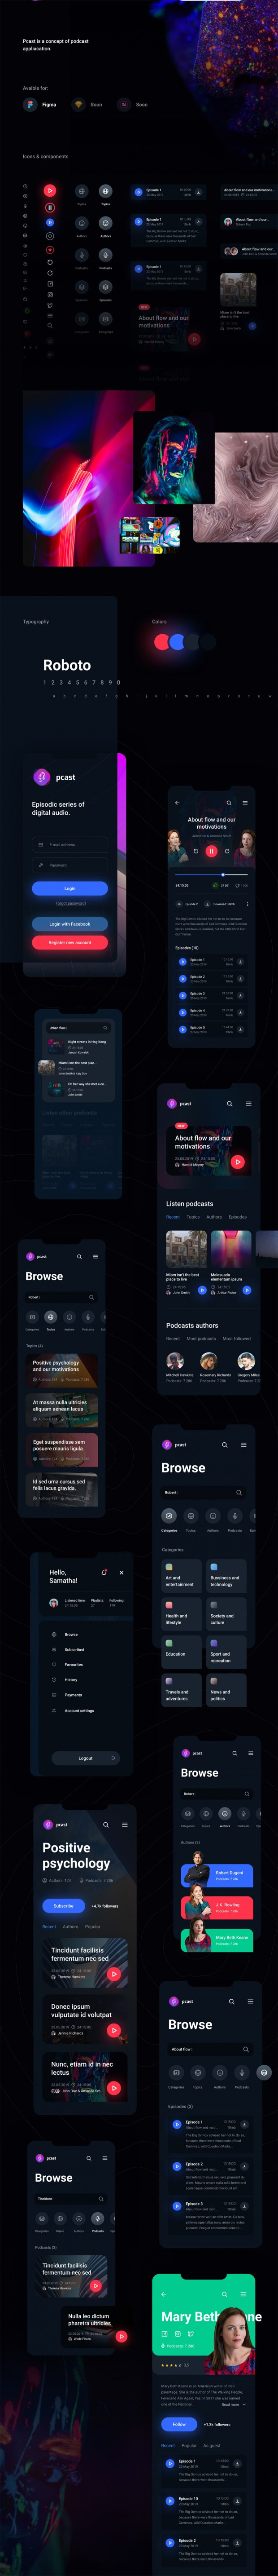 Pcast – Mobile Podcast App Free UI-Kit